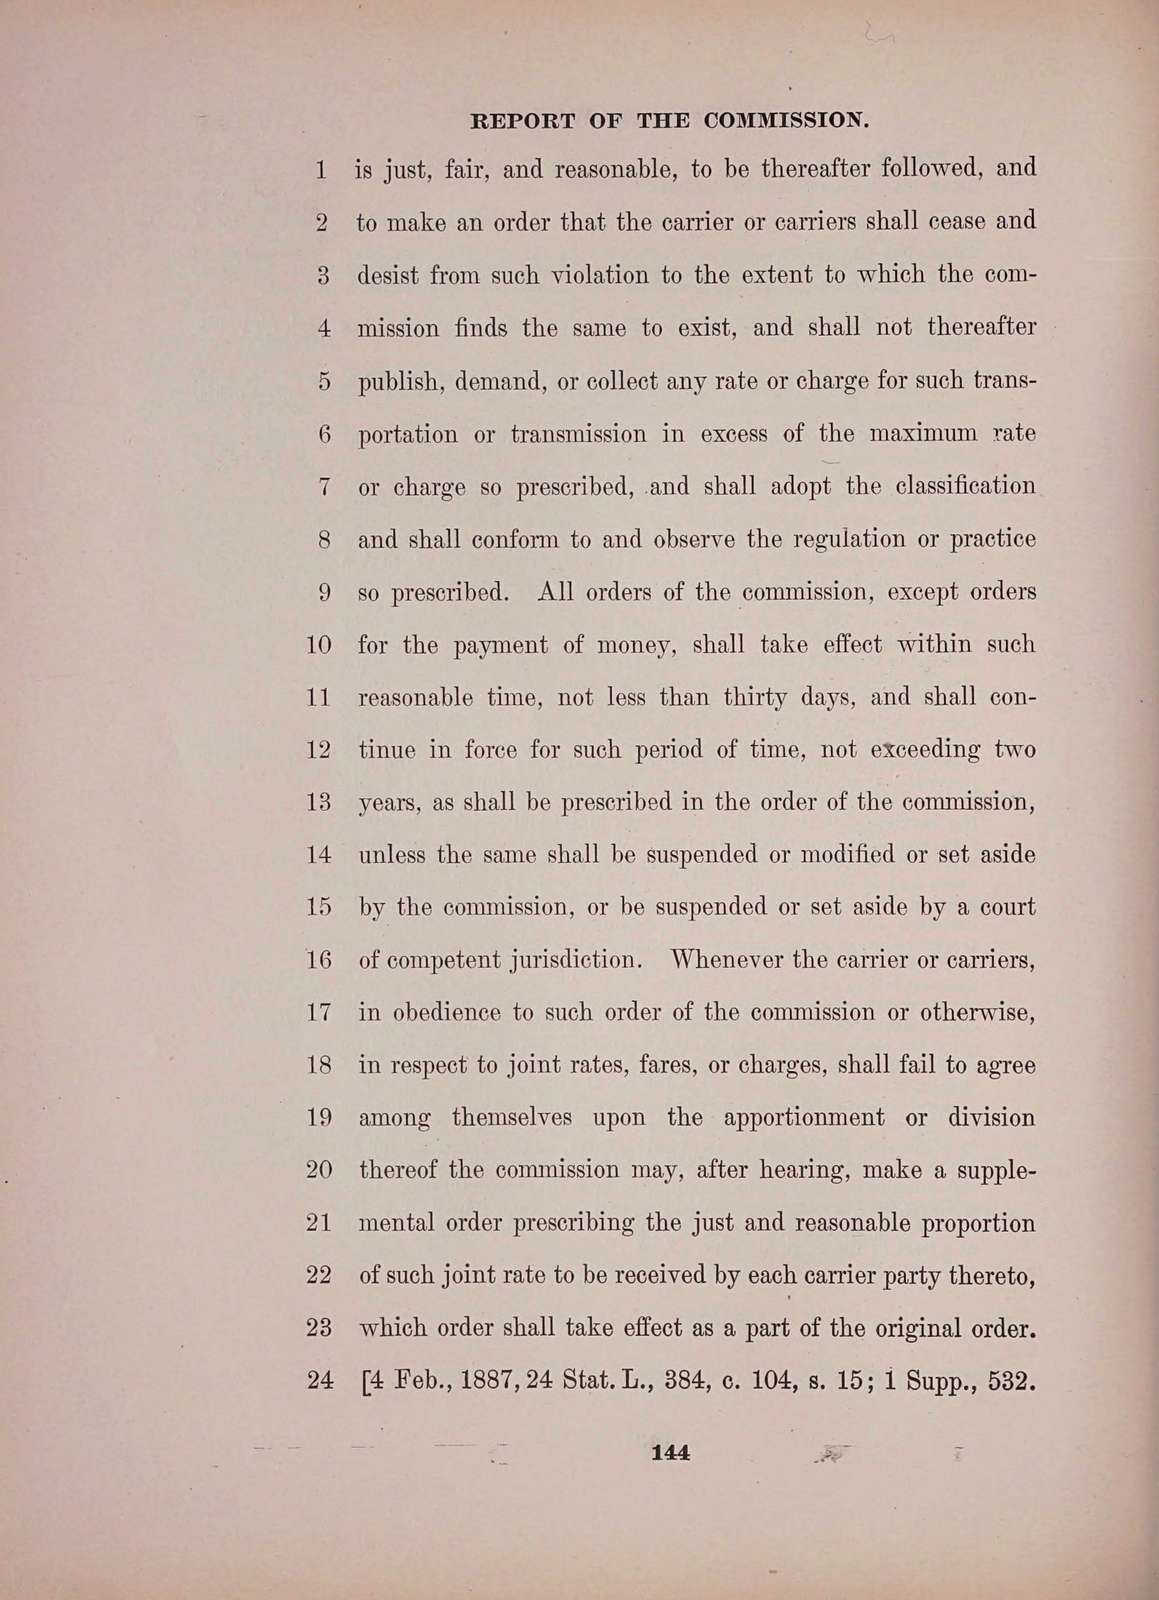 Code of laws governing common carriers of interstate and foreign commerce and within the District of Columbia. Report of commission and existing law